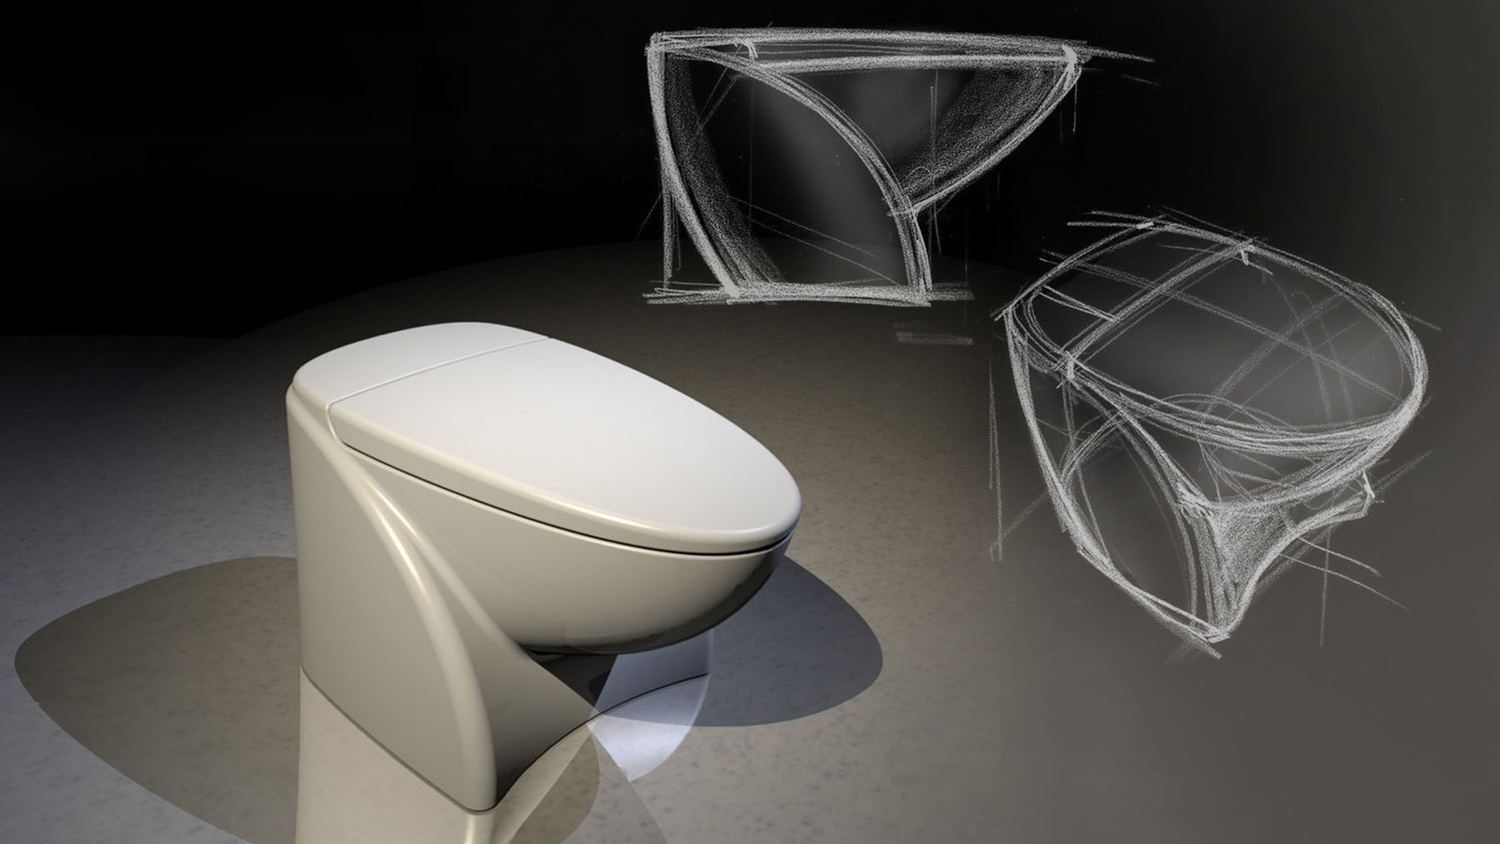 American Standard Insync Concept Toilet